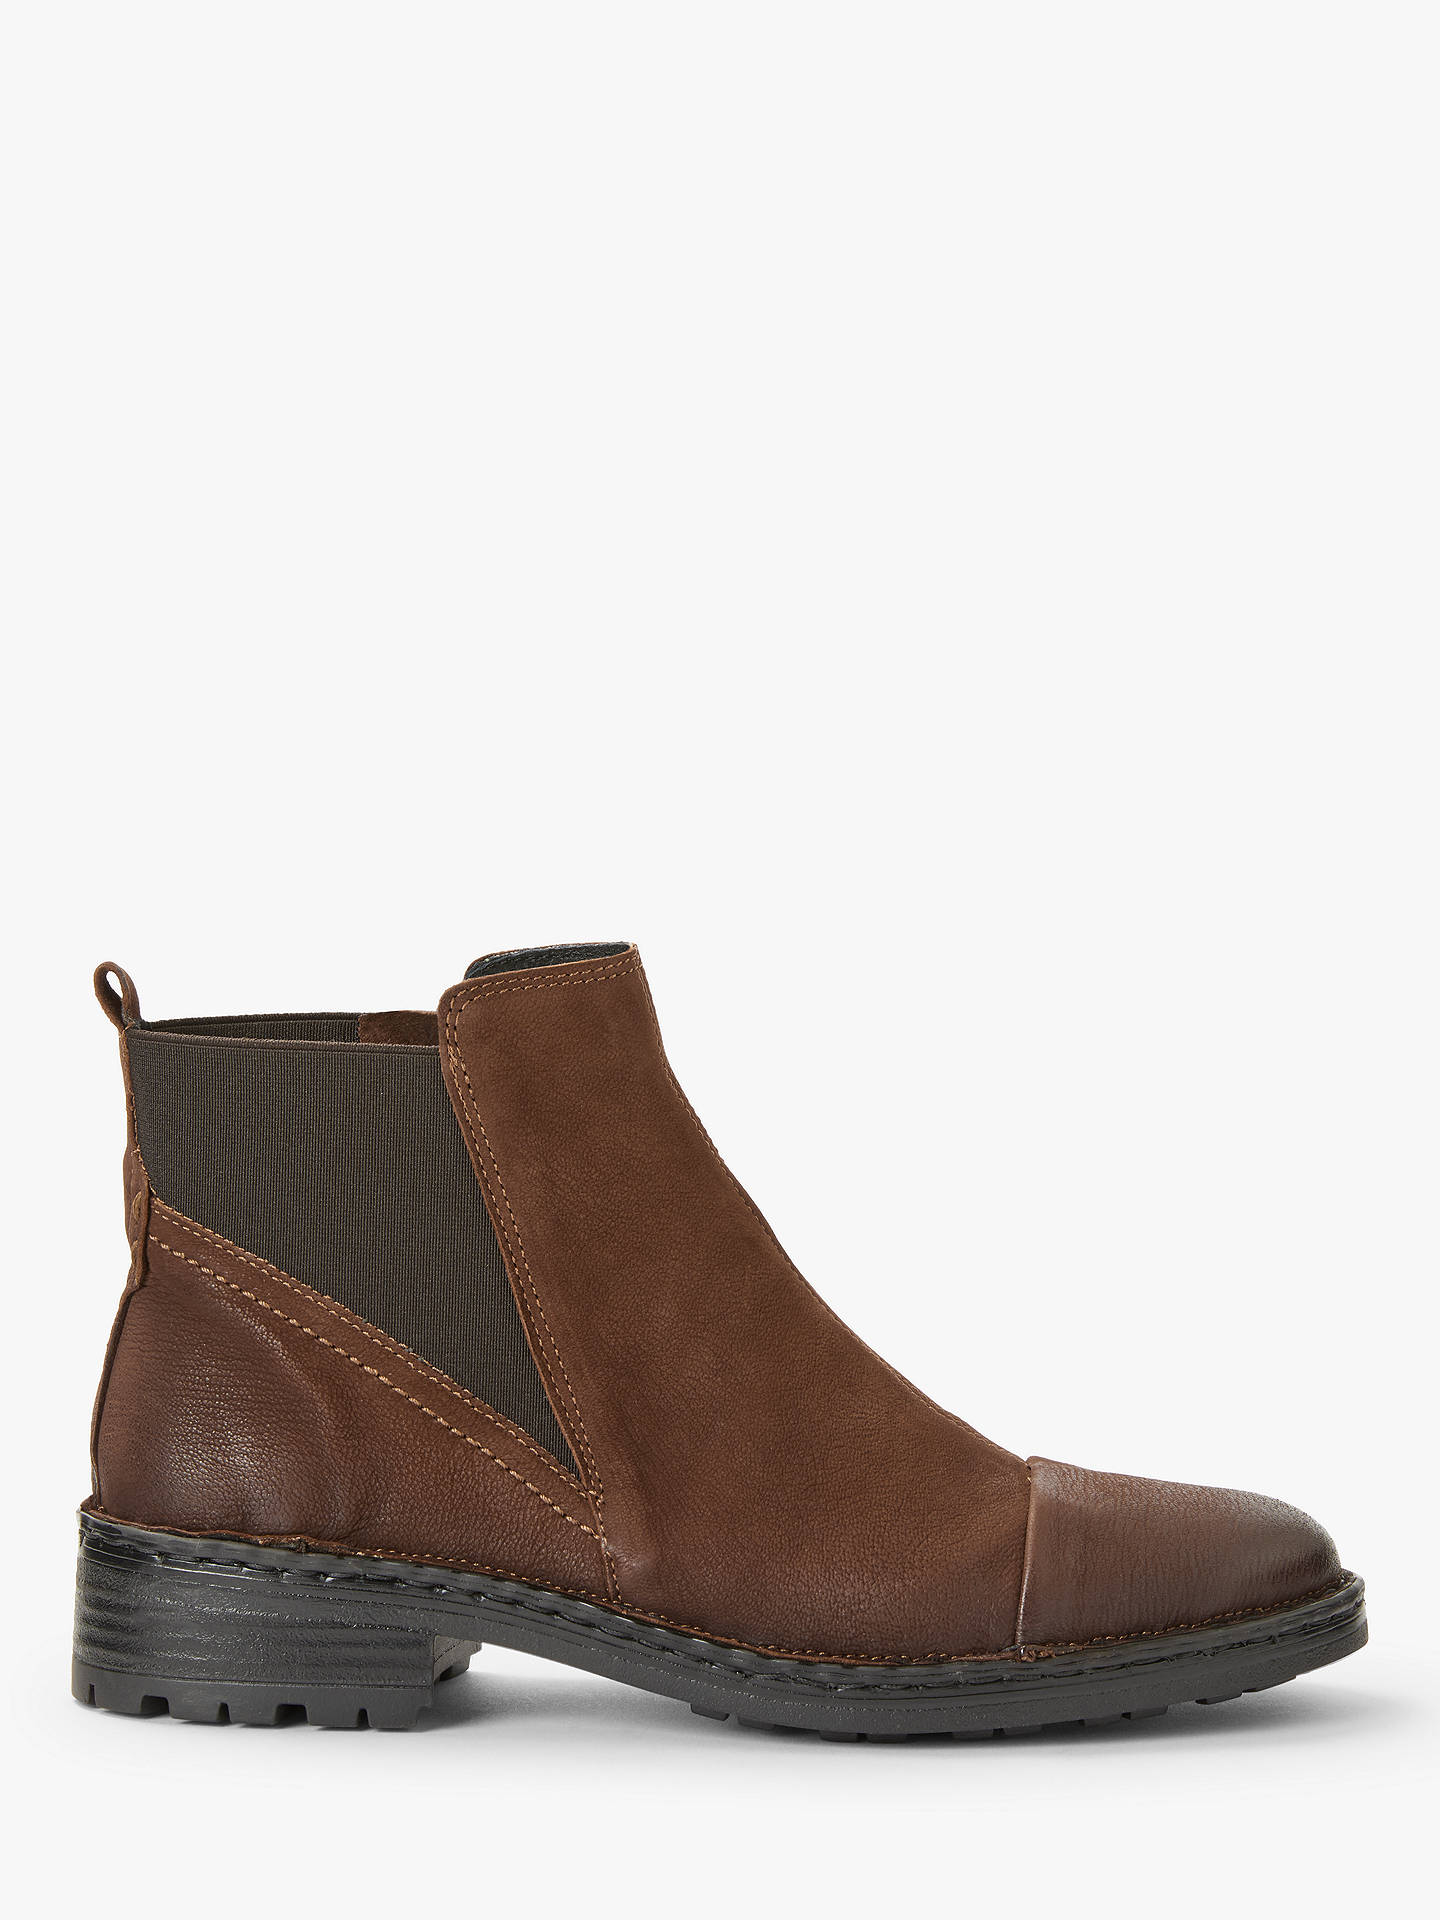 BuyJohn Lewis & Partners Designed for Comfort Pia Chelsea Boots, Brown Nubuck, 3 Online at johnlewis.com